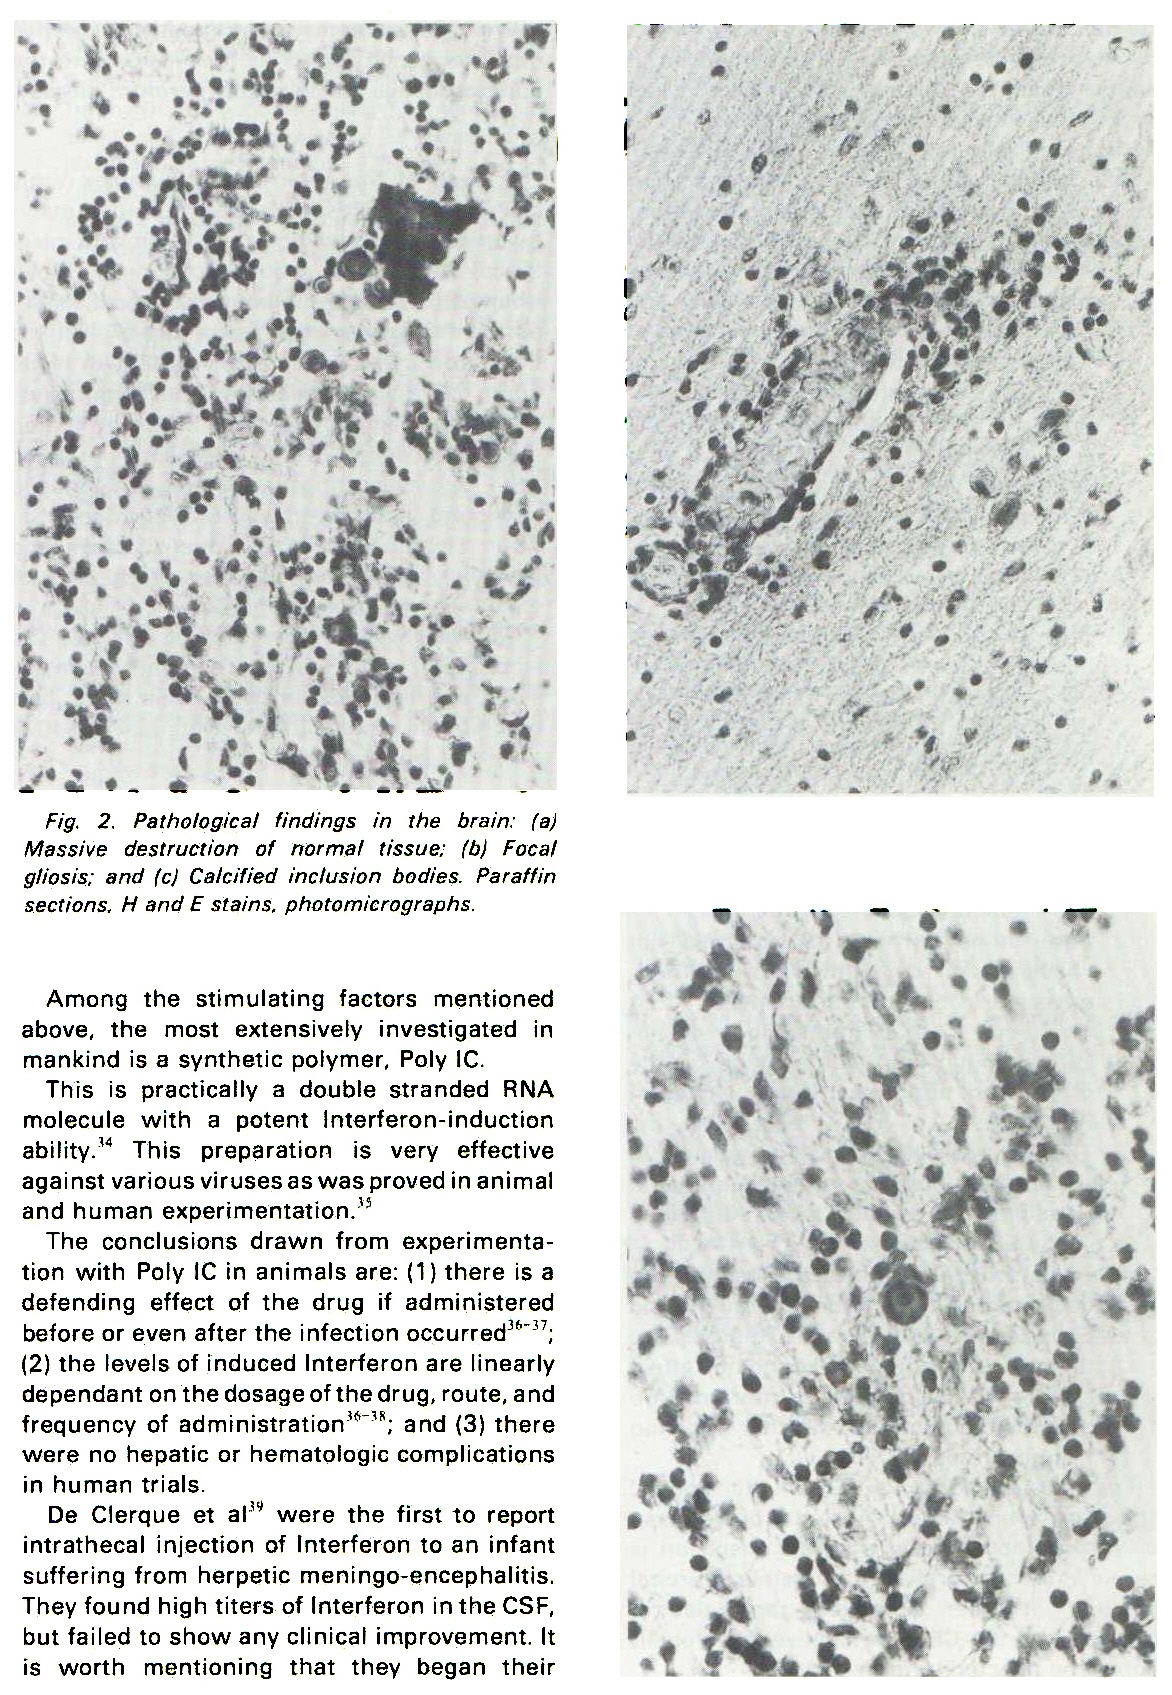 Fig. 2. Pathological findings in the brain: (a) Massive destruction of normal tissue: (b) Focal gliosis: and (c) Calcified inclusion bodies. Paraffin sections, H and E stains, photomicrographs.